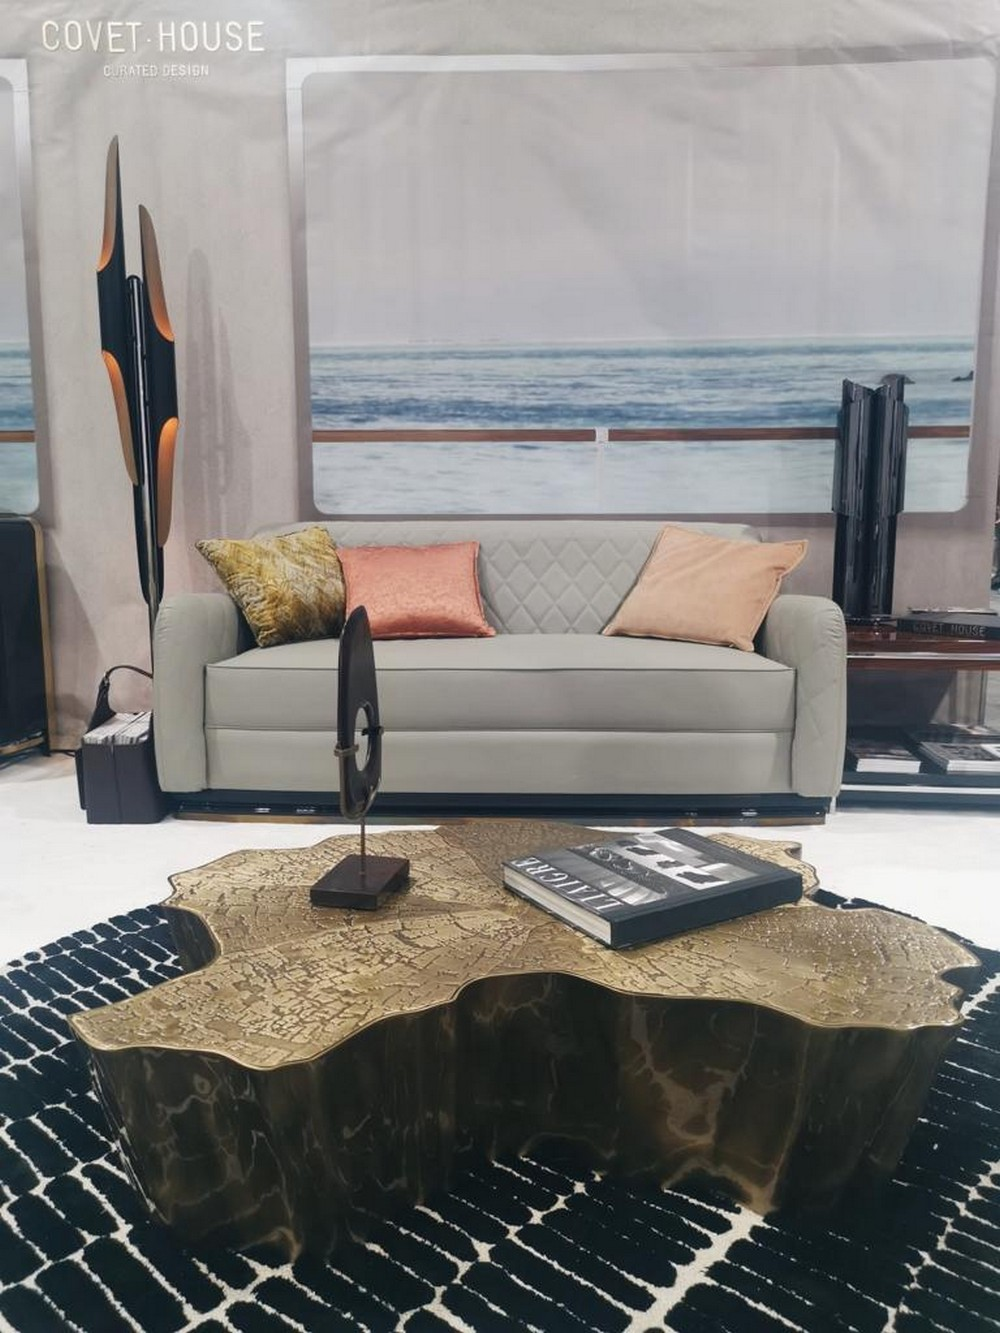 FLIBS 2019 - Recall The Best Moments Of The Luxury Yacht Event flibs 2019 FLIBS 2019 – Recall The Best Moments Of The Luxury Yacht Event FLIBS 2019 Recall The Best Moments Of The Luxury Yacht Event